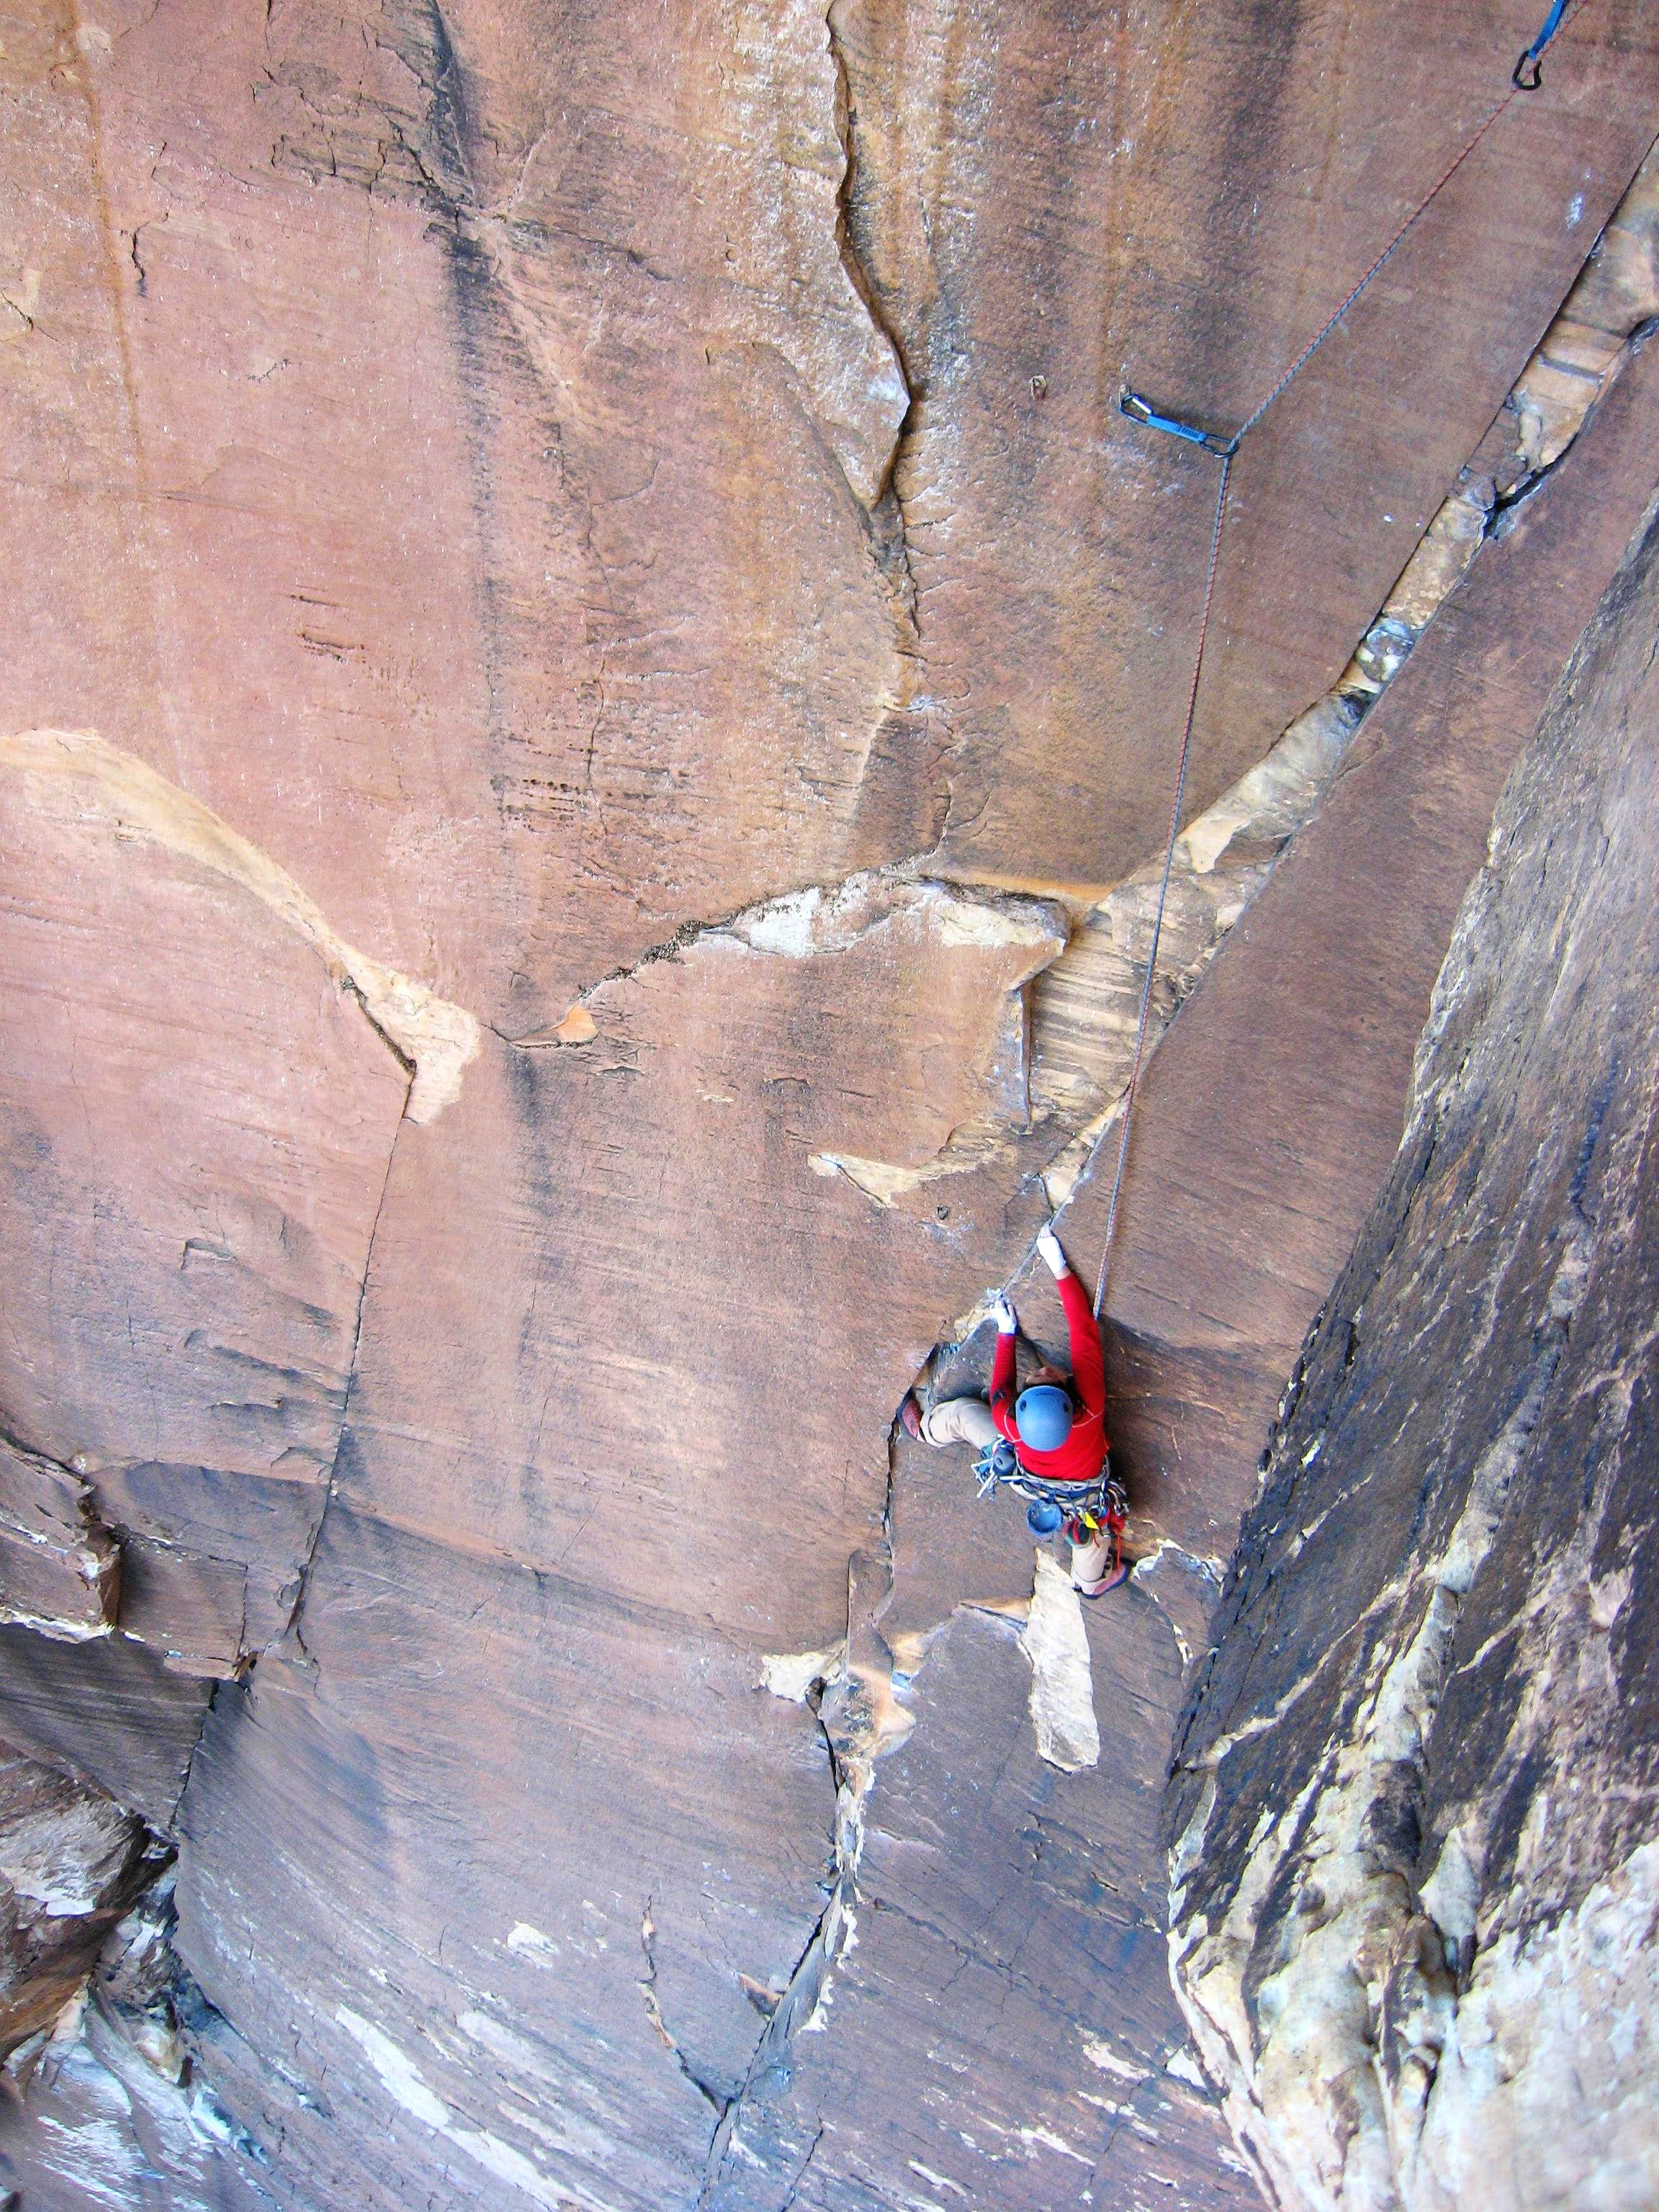 Overhanging Hangover, 5.10a, 2 Pitches